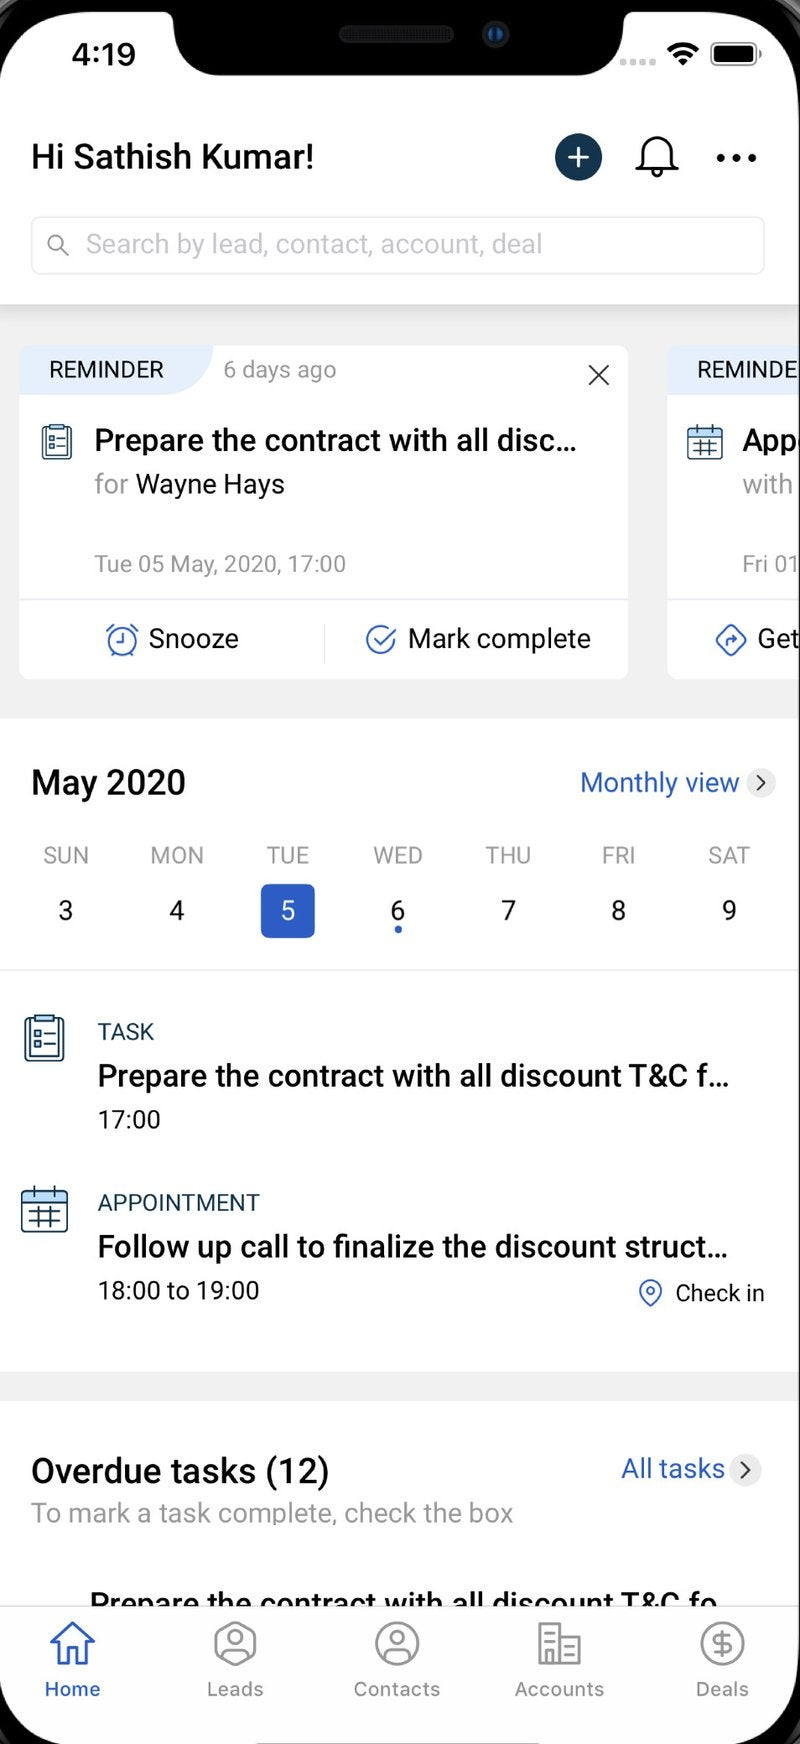 A view of the home screen on the Freshworks app with tasks and calendar reminders.